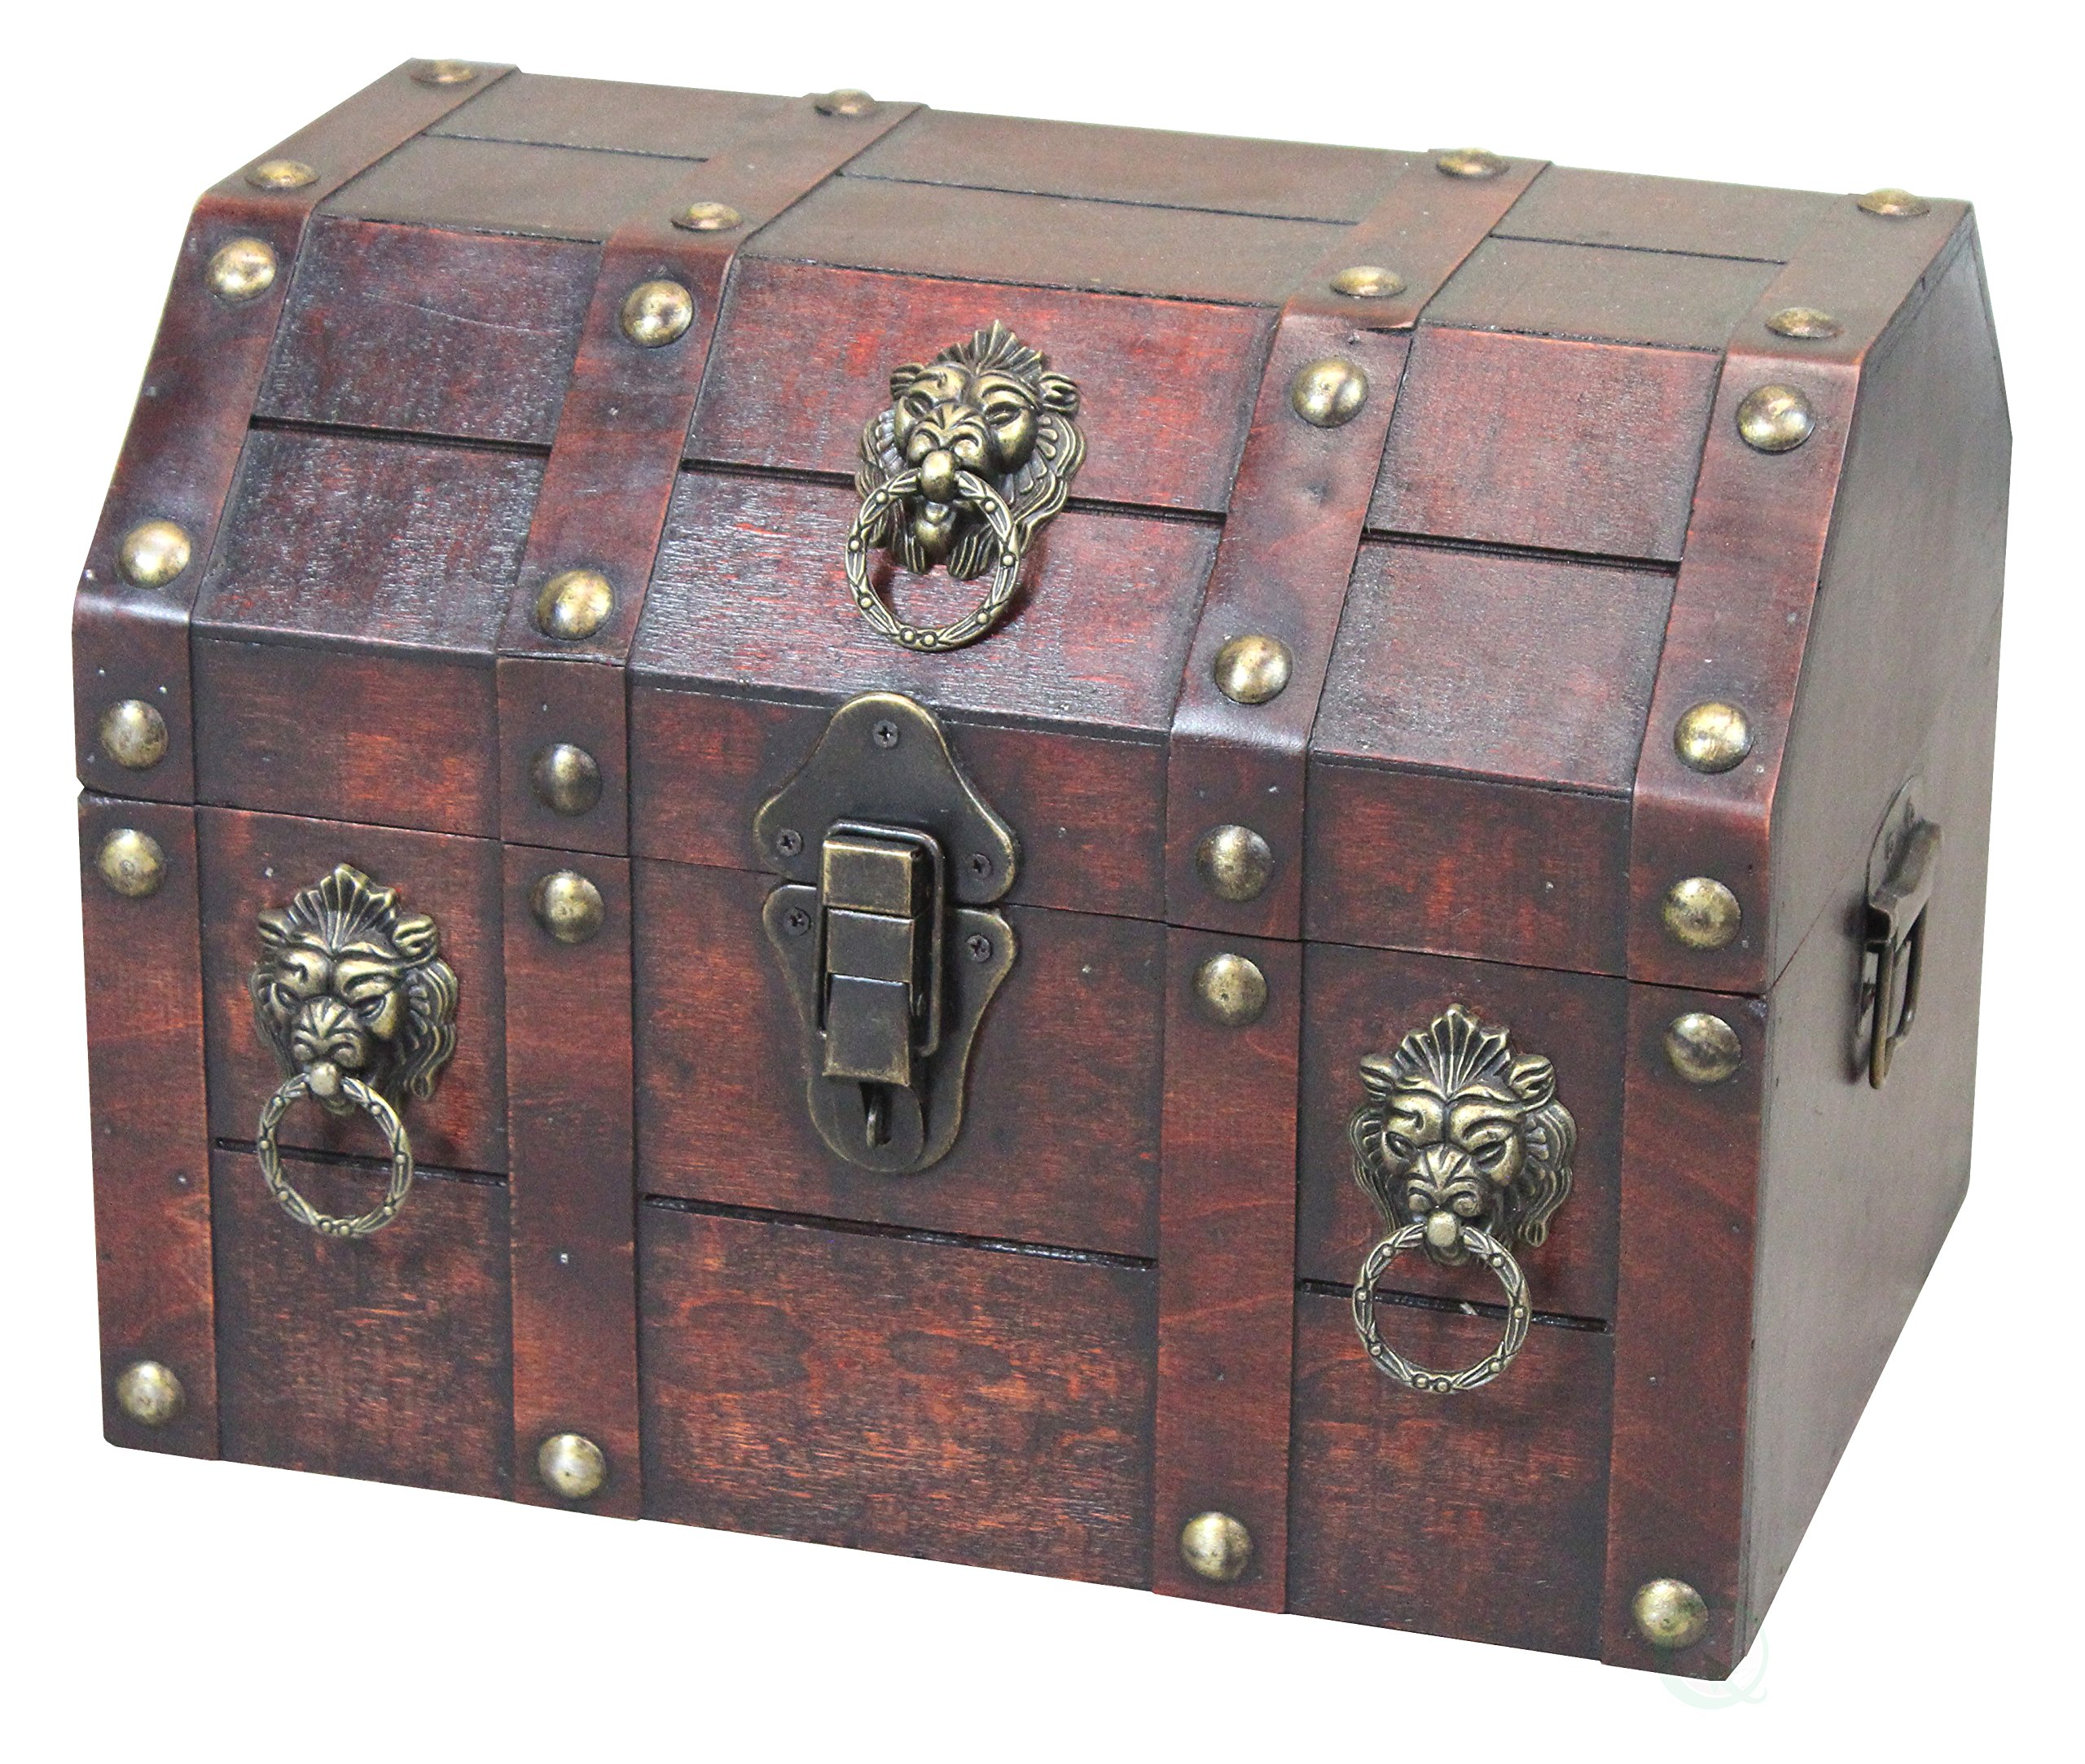 Vintiquewise QI003316 Antique Wooden Pirate Chest with Lion Rings and Lockable Latch by Vintiquewise